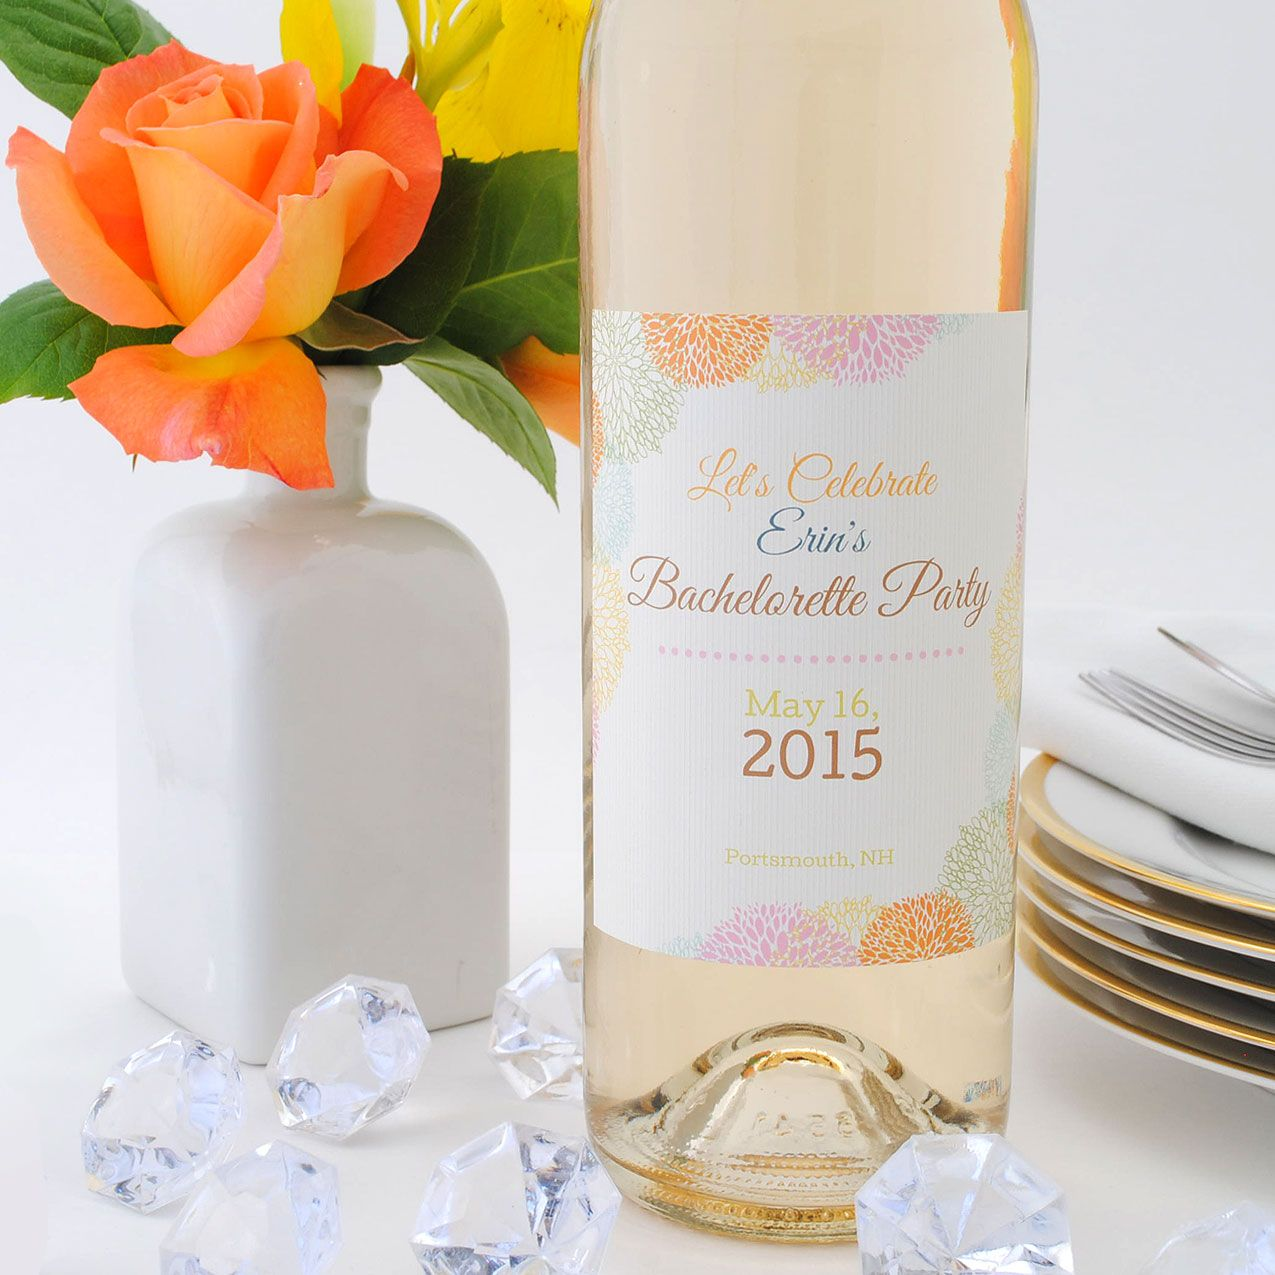 Wine labels to celebrate a bachelorette party. From elegant to funny ...